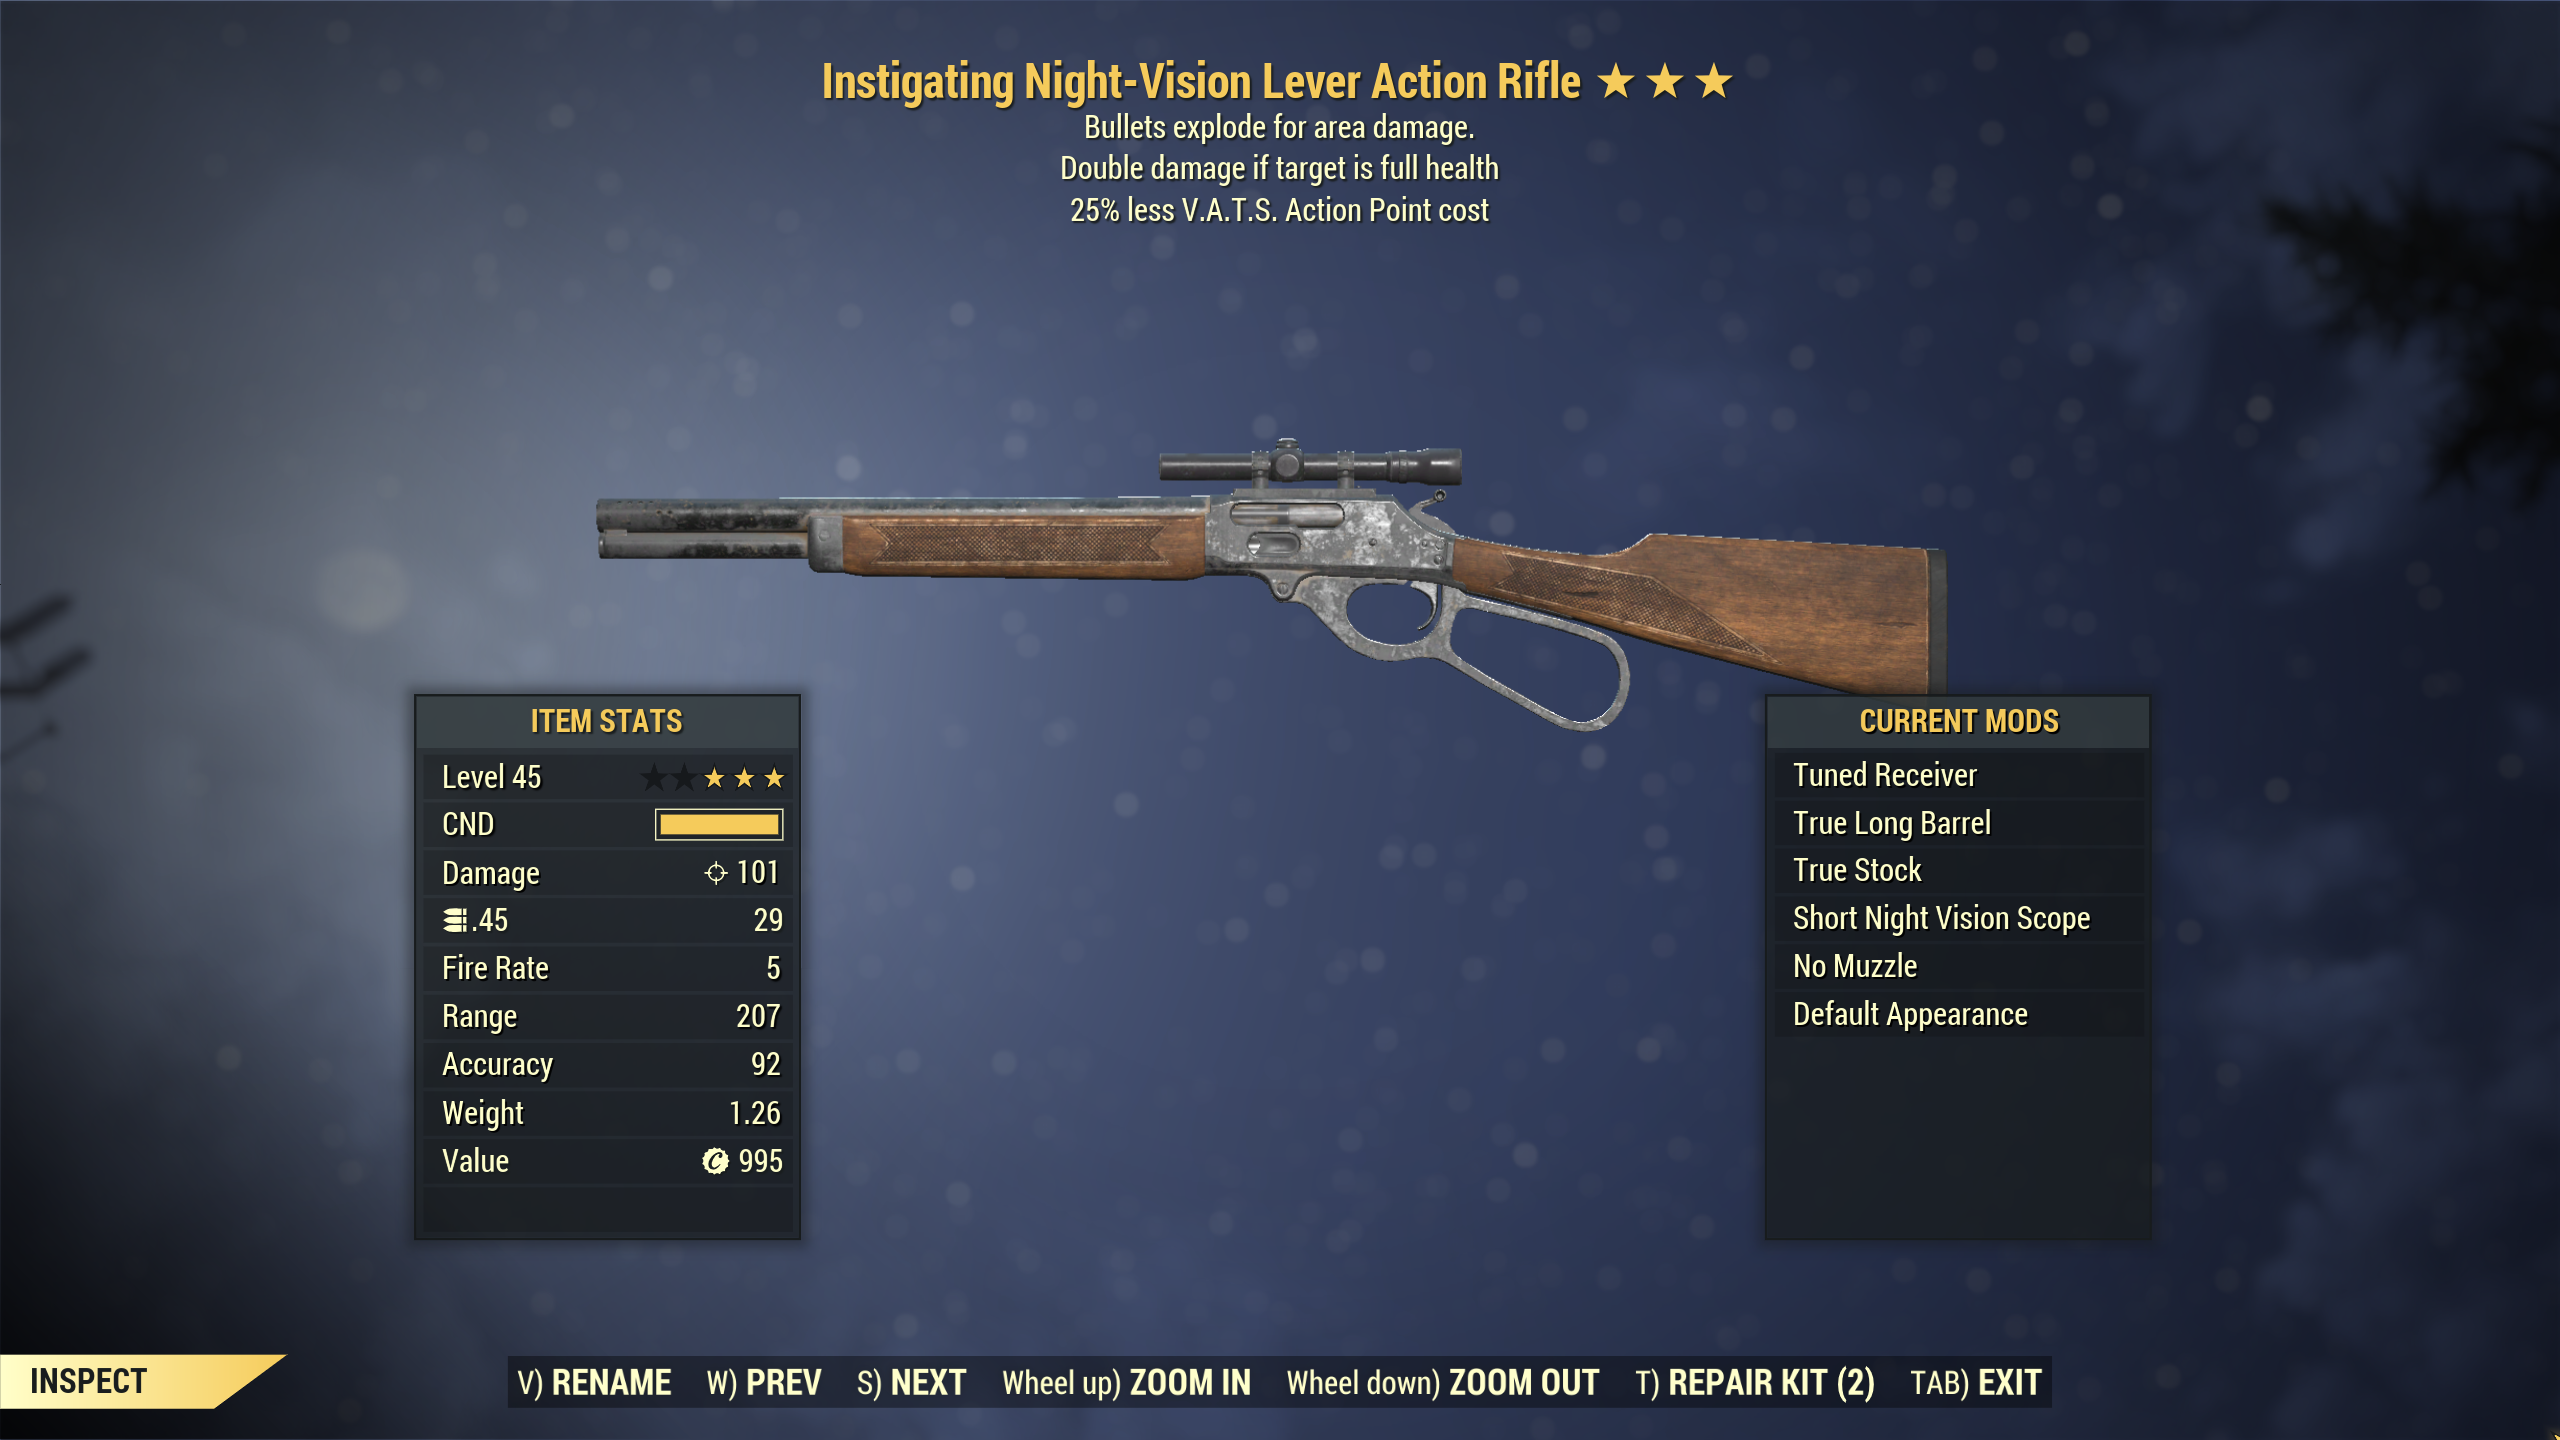 ★★★ Instigating Explosive Lever Action Rifle[25% Less VATS]   FAST DELIVERY  